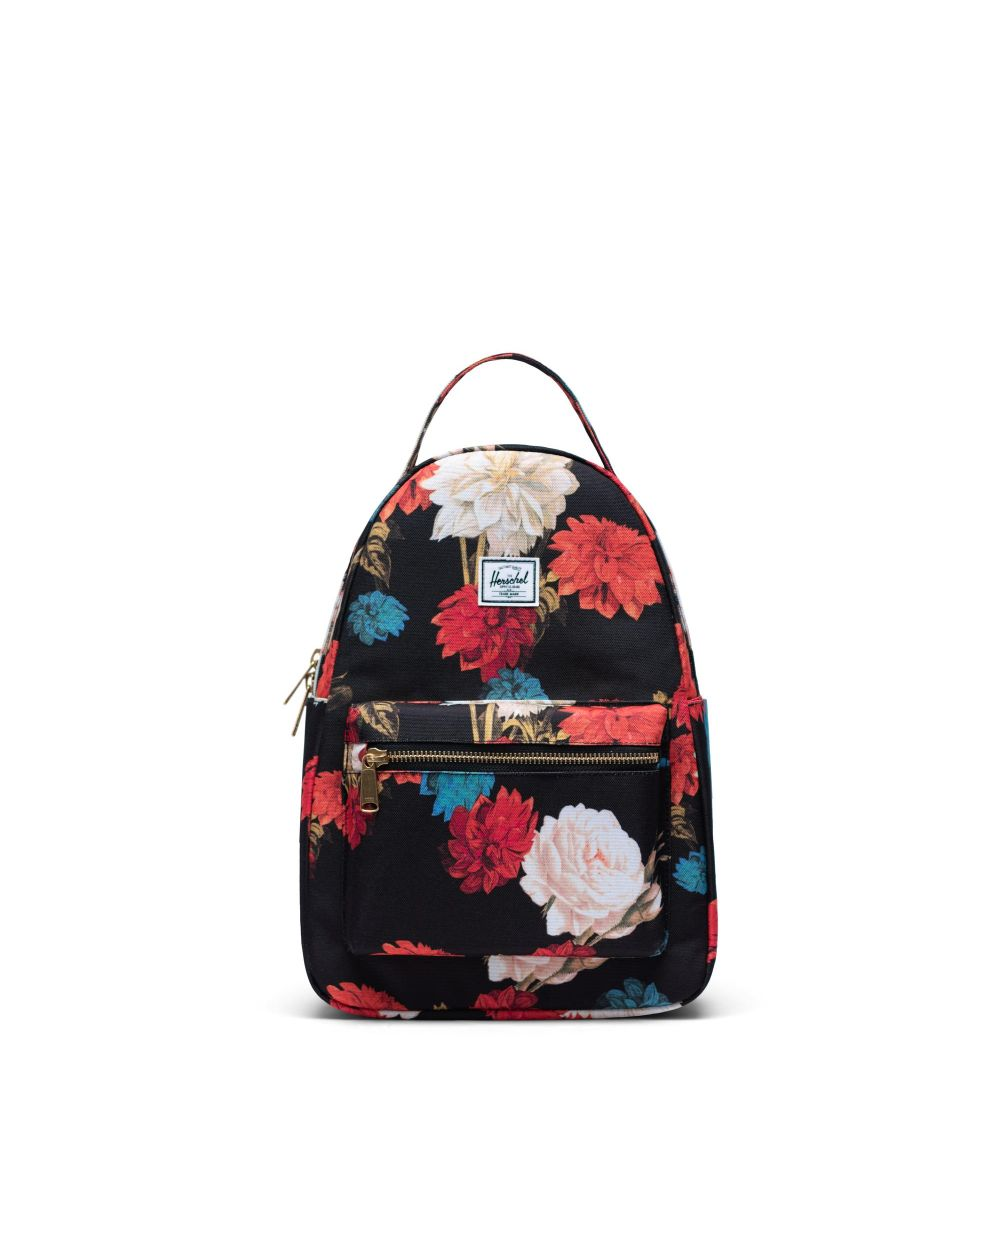 Herschel Supply Co. - Nova Backpack Small, Vintage Floral Black